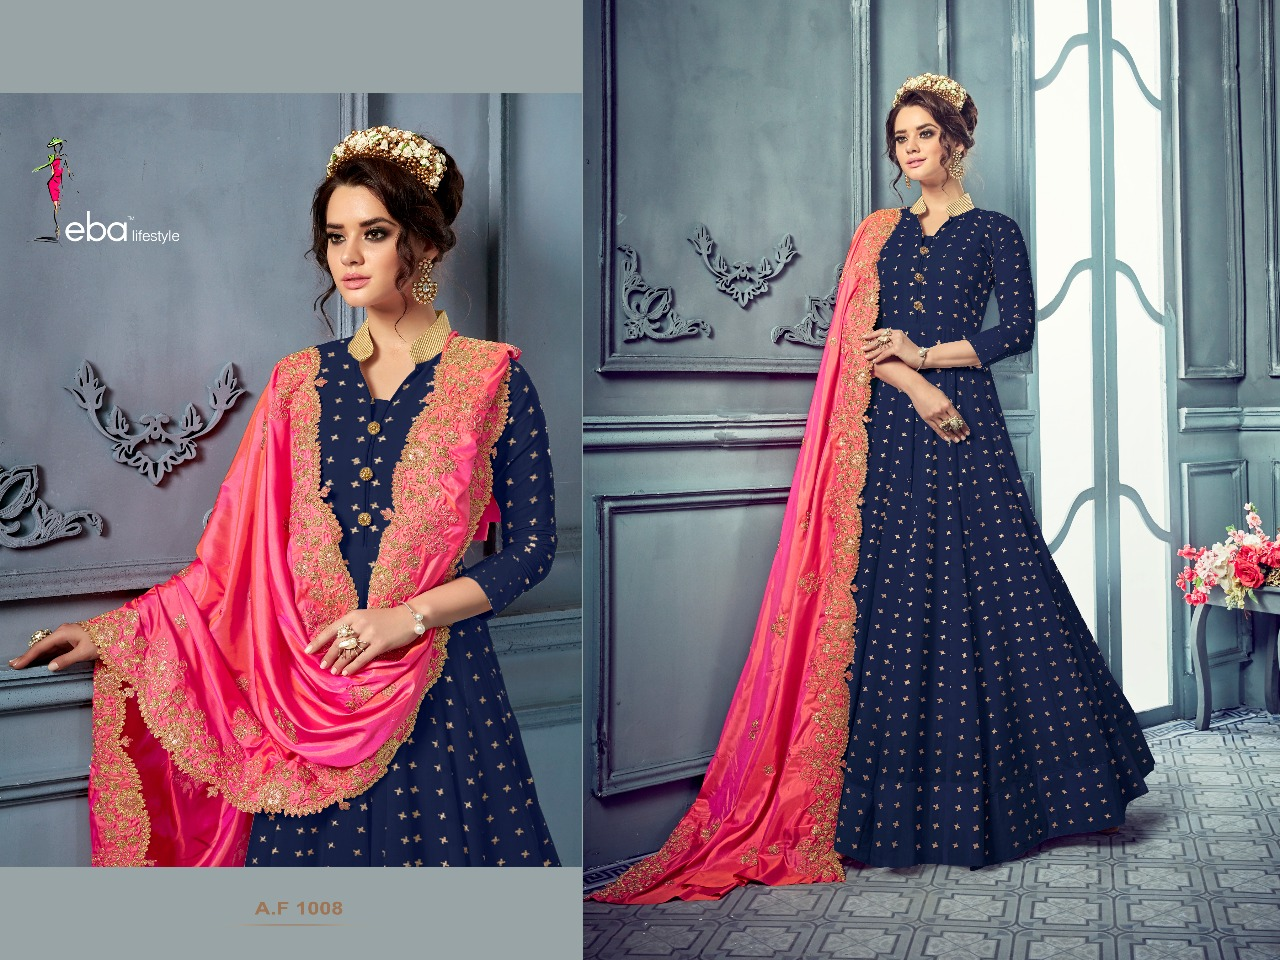 Eba lifestyle AF 1008 New colour designer gown style readymade catalogue at best price surat